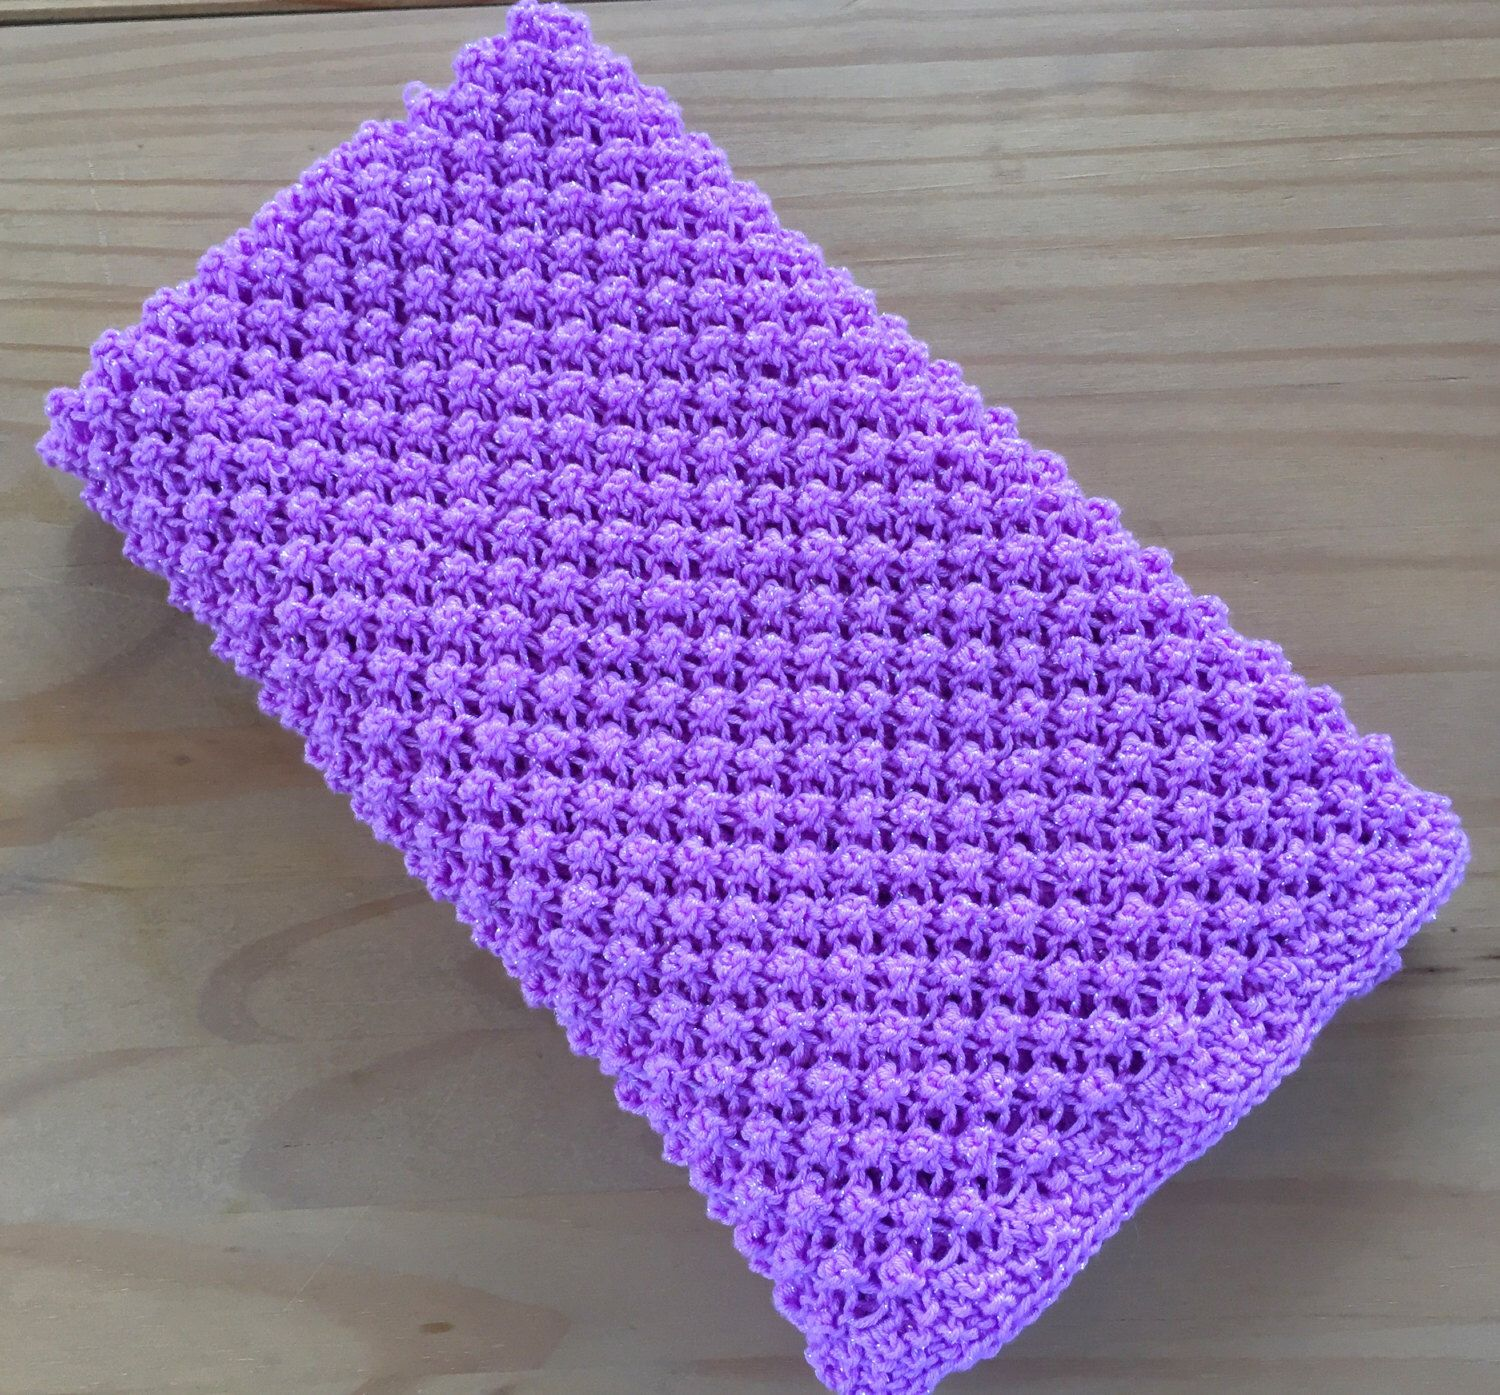 Hand knit sparkly baby blanket by Daisy Gray Knits | knitting ...